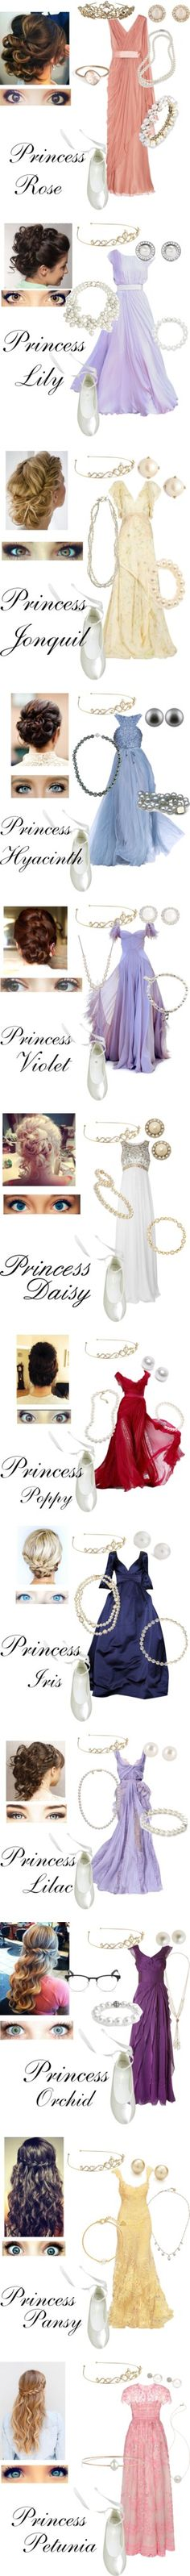 The 12 Dancing Princesses/Princess of the Midnight Ball by disney-styled on Polyvore featuring Alberta Ferretti, Brooks Brothers, Anne Klein, Kate Spade, Alexander McQueen, ASOS, Tiffany & Co., Kenneth Jay Lane, David Yurman and Zac Posen